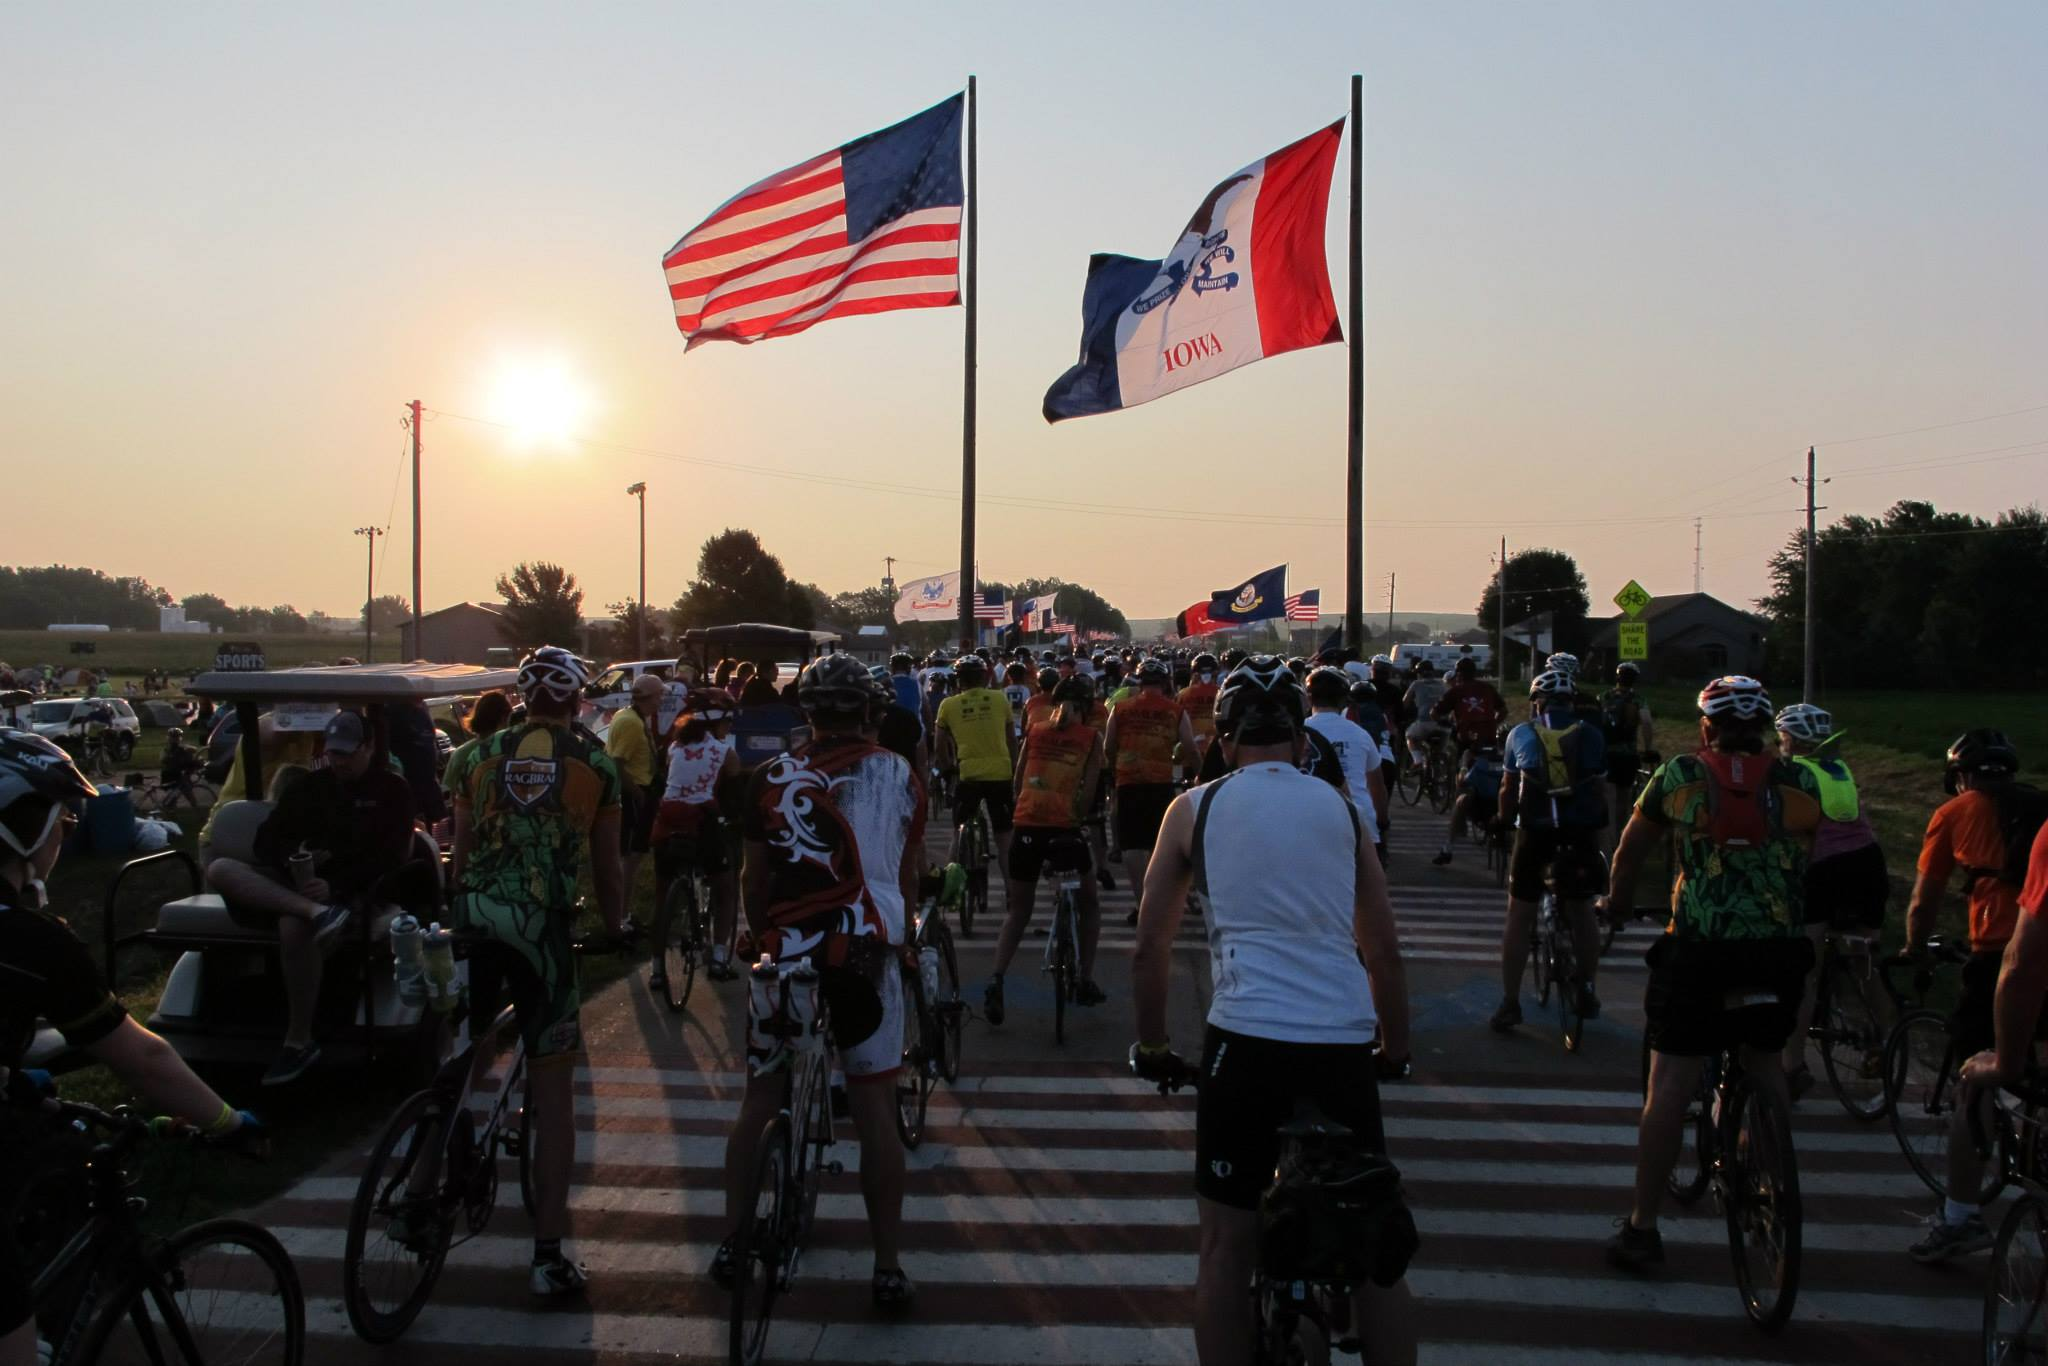 Flags flank the start line at the edge of Rock Valley.